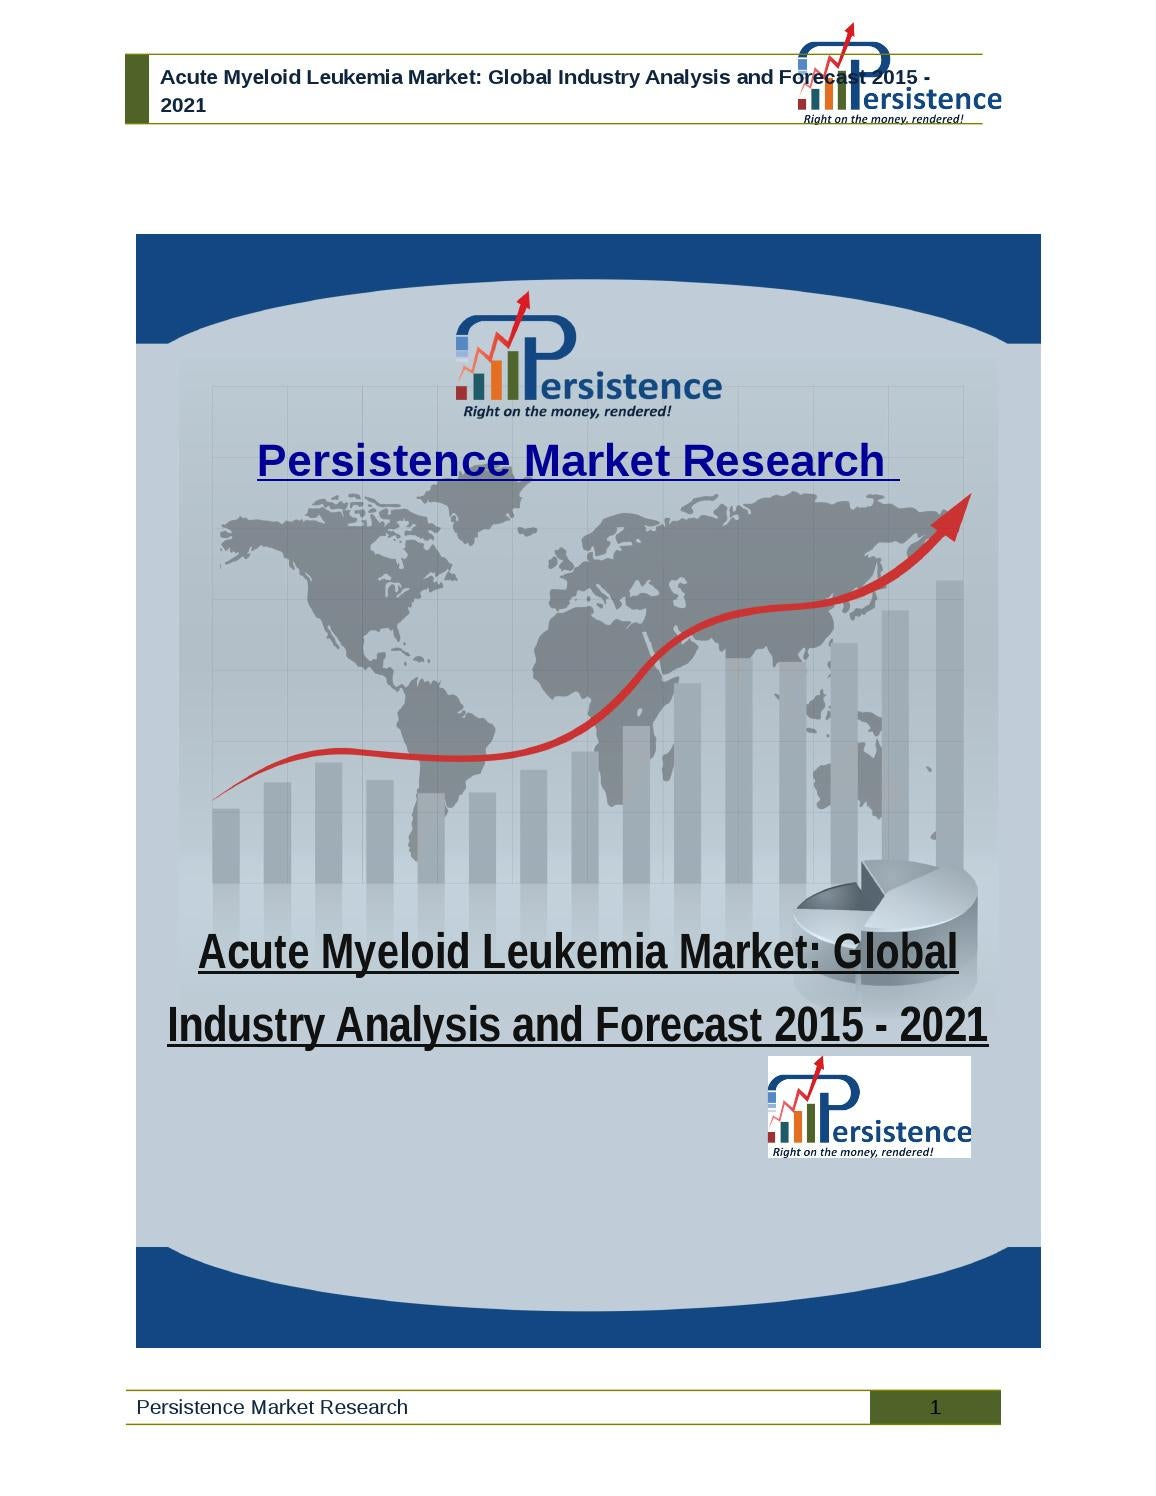 bioactive ingredients product market forecast The bioactive ingredients market is an emerging sector with various stakeholders such as raw material suppliers, processors, product manufacturers, and end-use consumers.